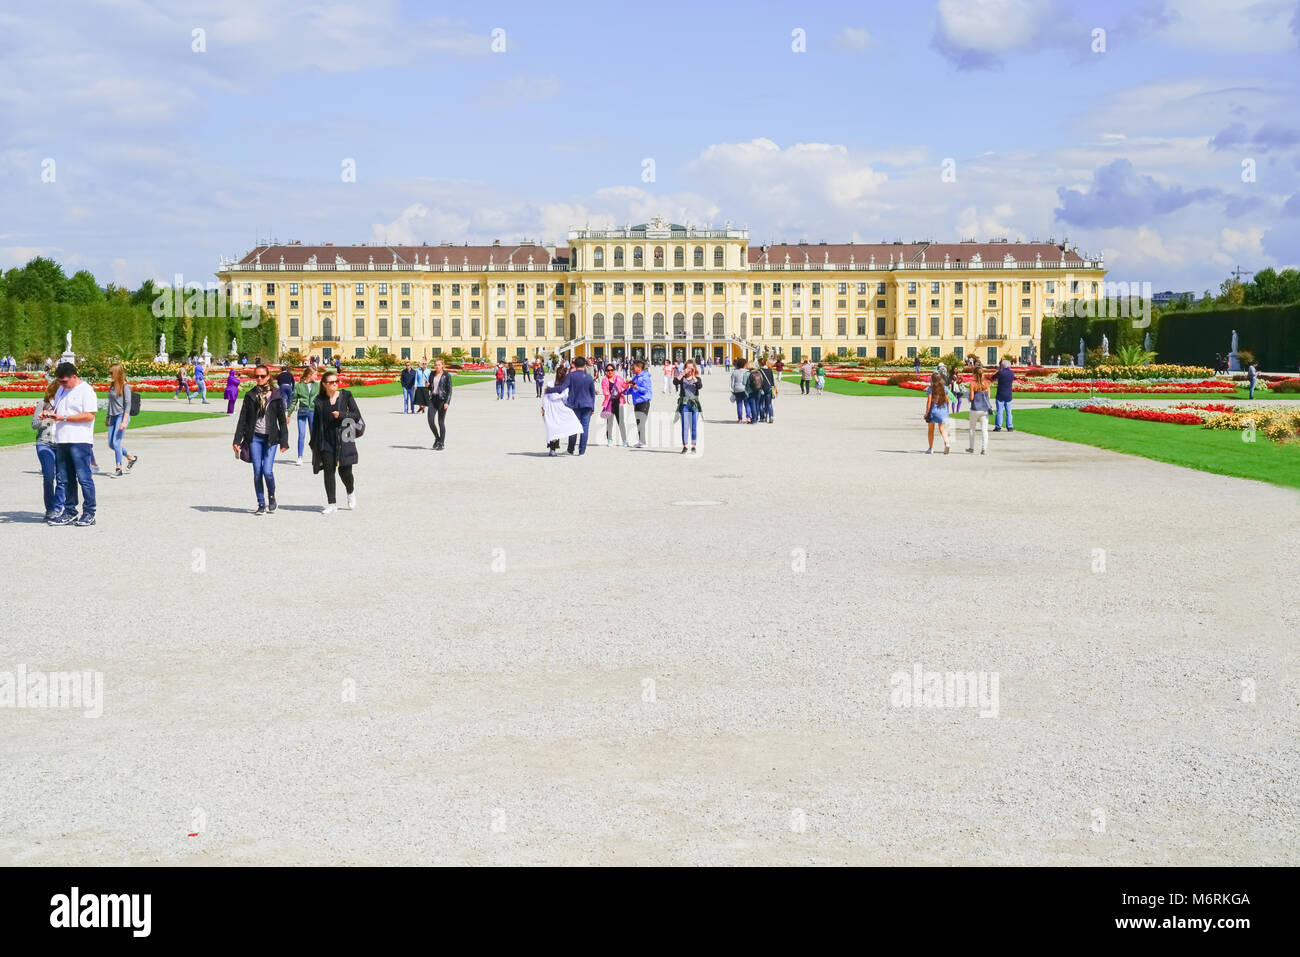 VIENNA,AUSTRIA - SEPTEMBER 4 2017; Tourists on space in front of Baroque architectural Schonbrunn Imperial Palace, - Stock Image